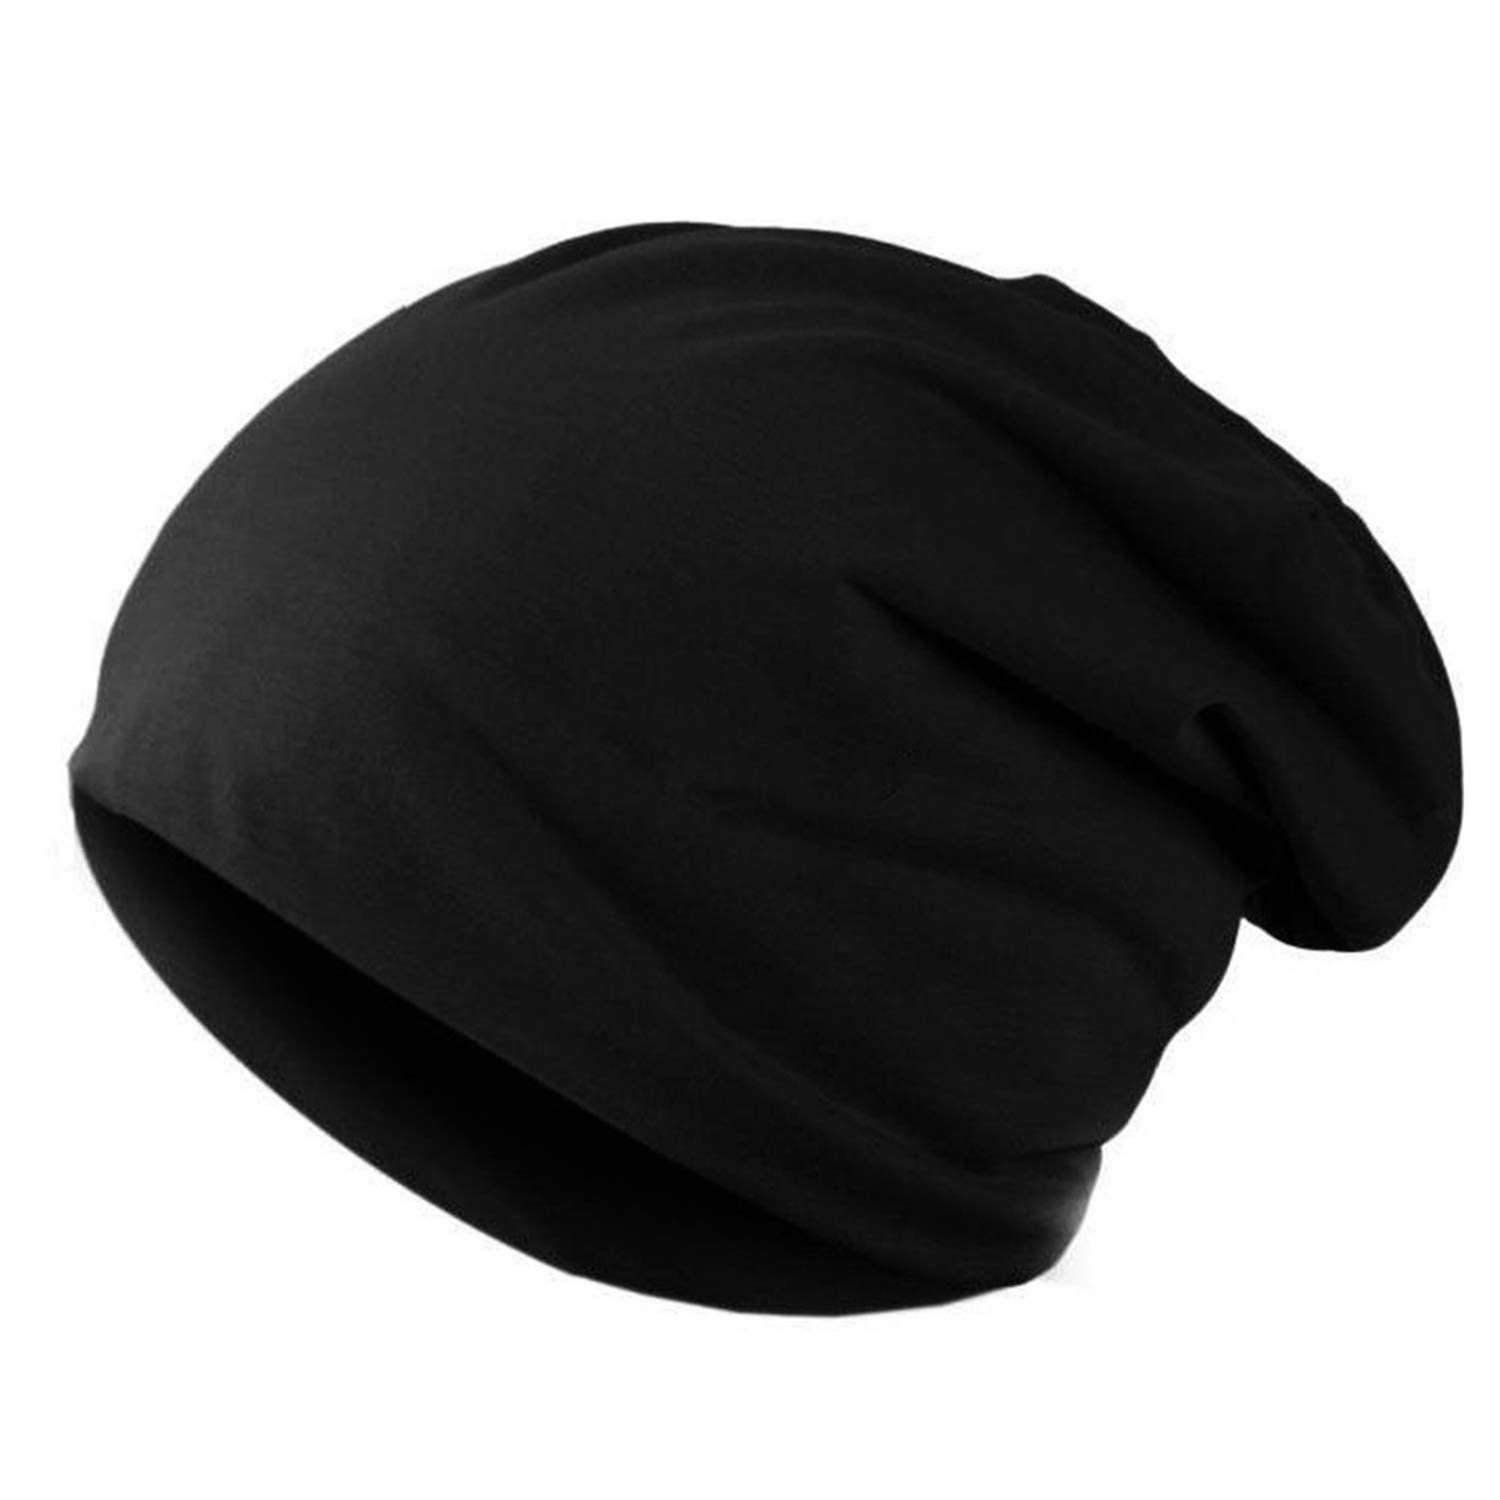 Men Women Knitted Winter Autumn Cap Solid Color Hip-hop Slouch Hats Feminino Gorras Sombrero Mujer Turban Black at Amazon Womens Clothing store: